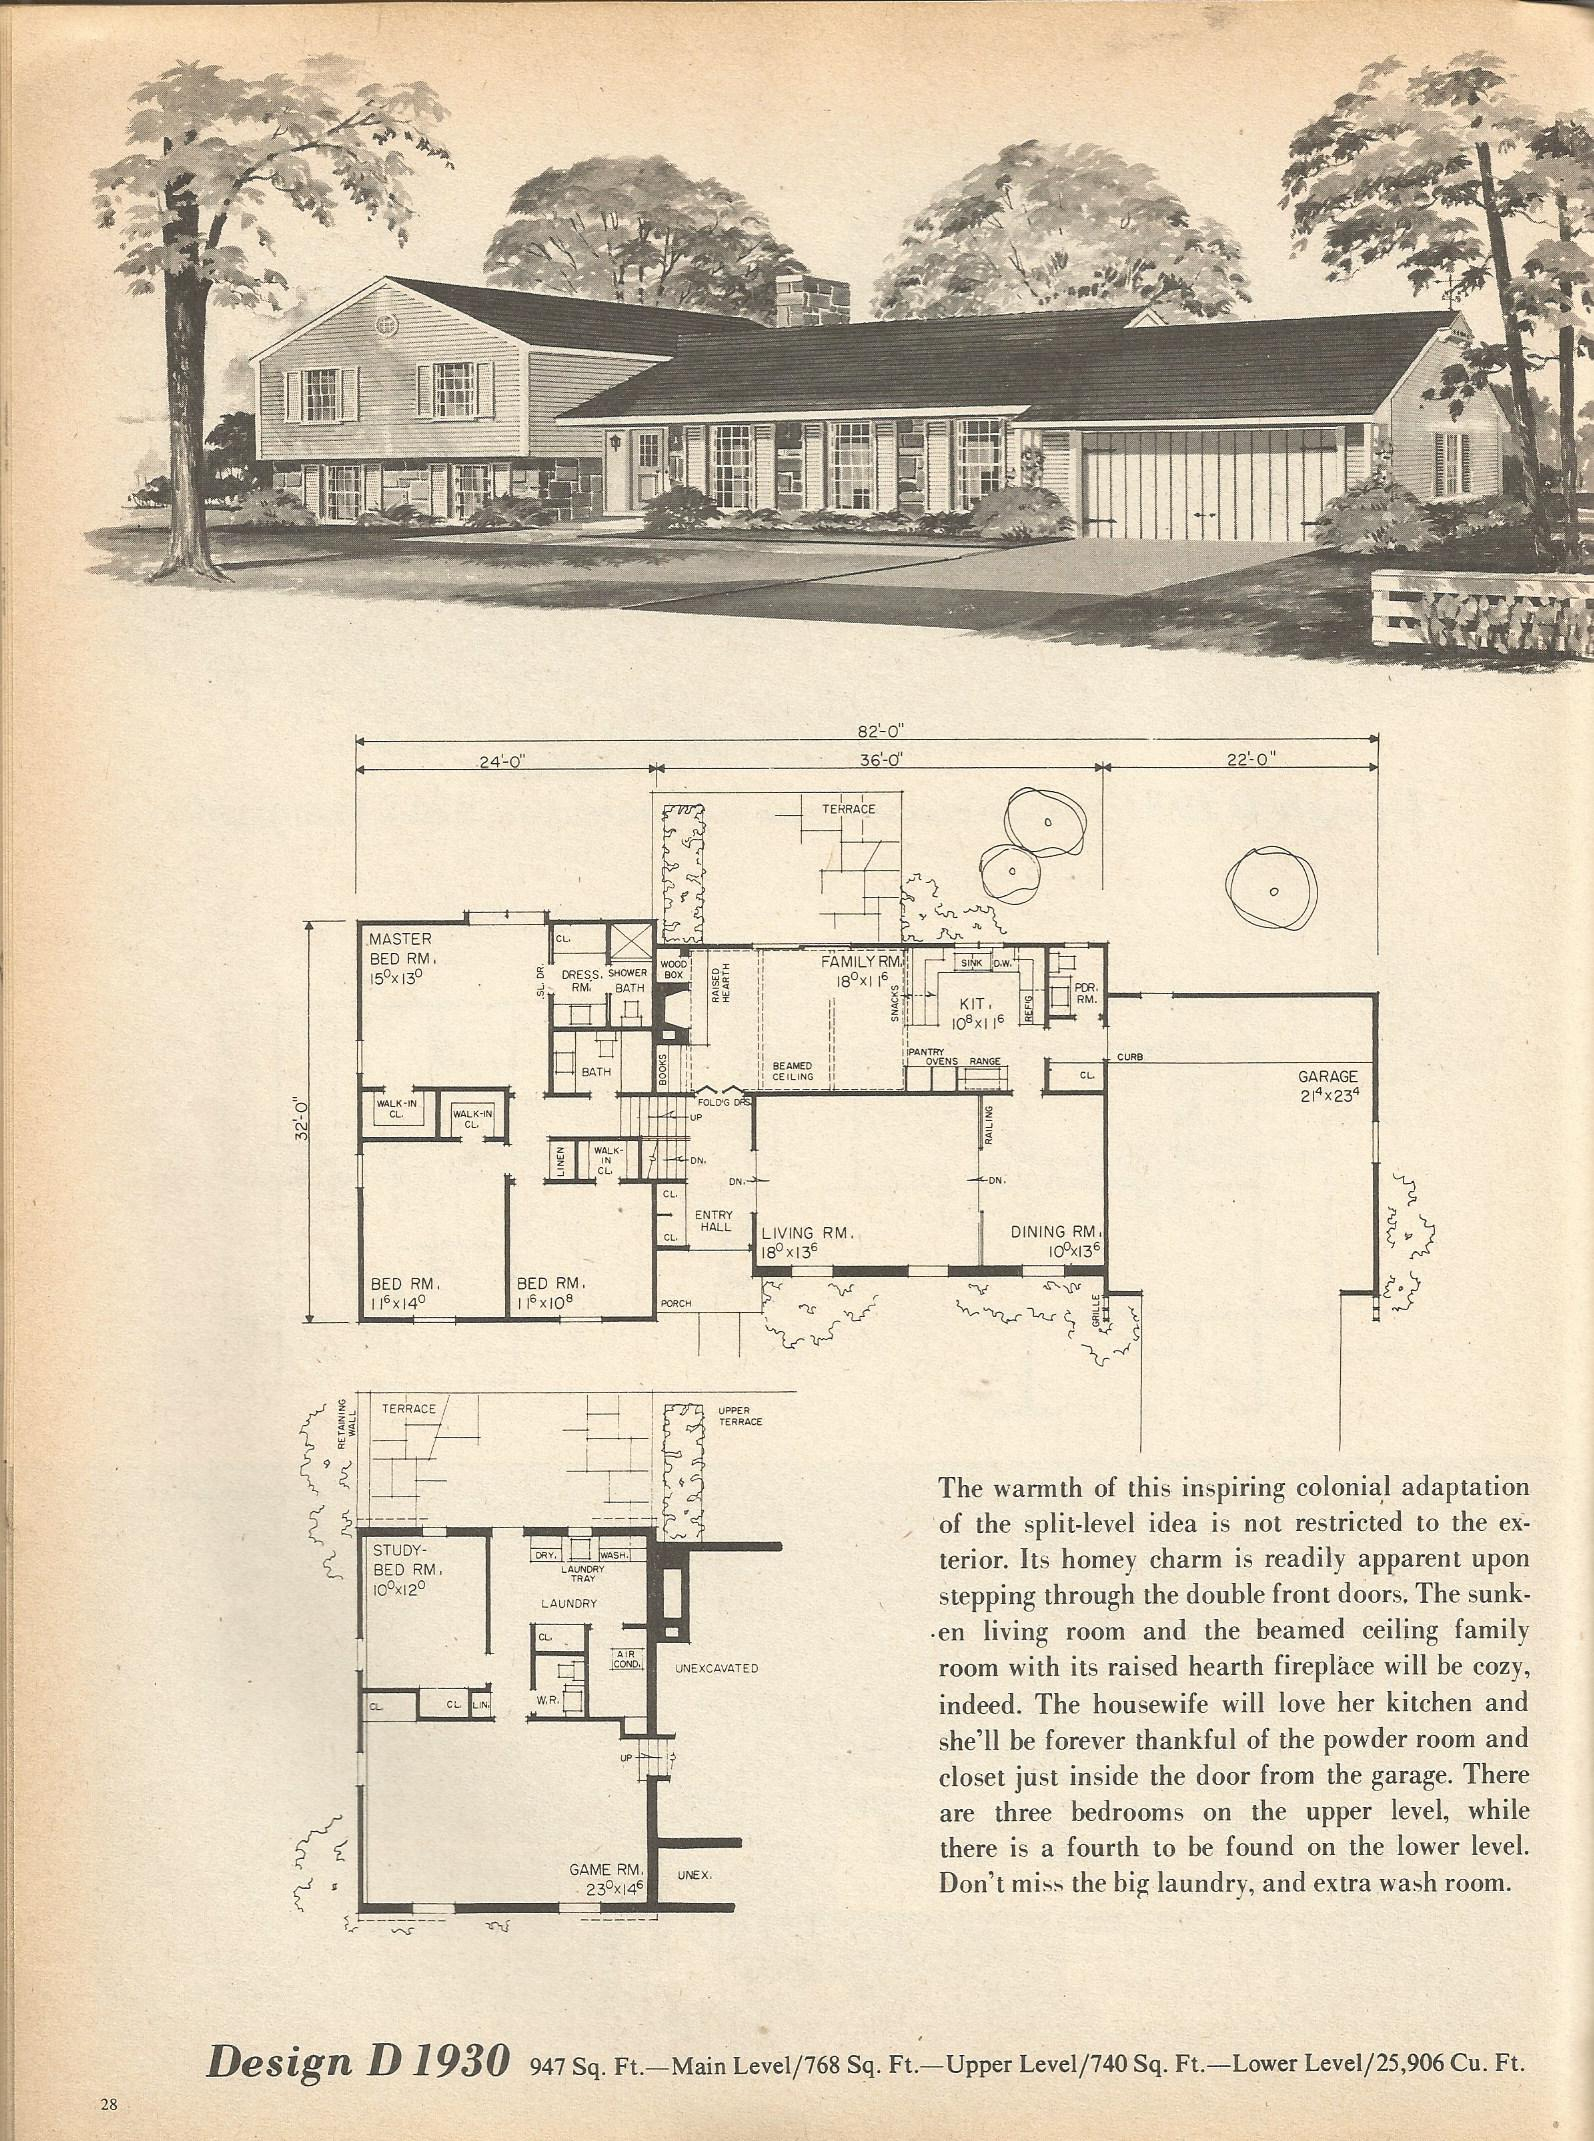 Vintage house plans 1930 antique alter ego for Antique farmhouse plans